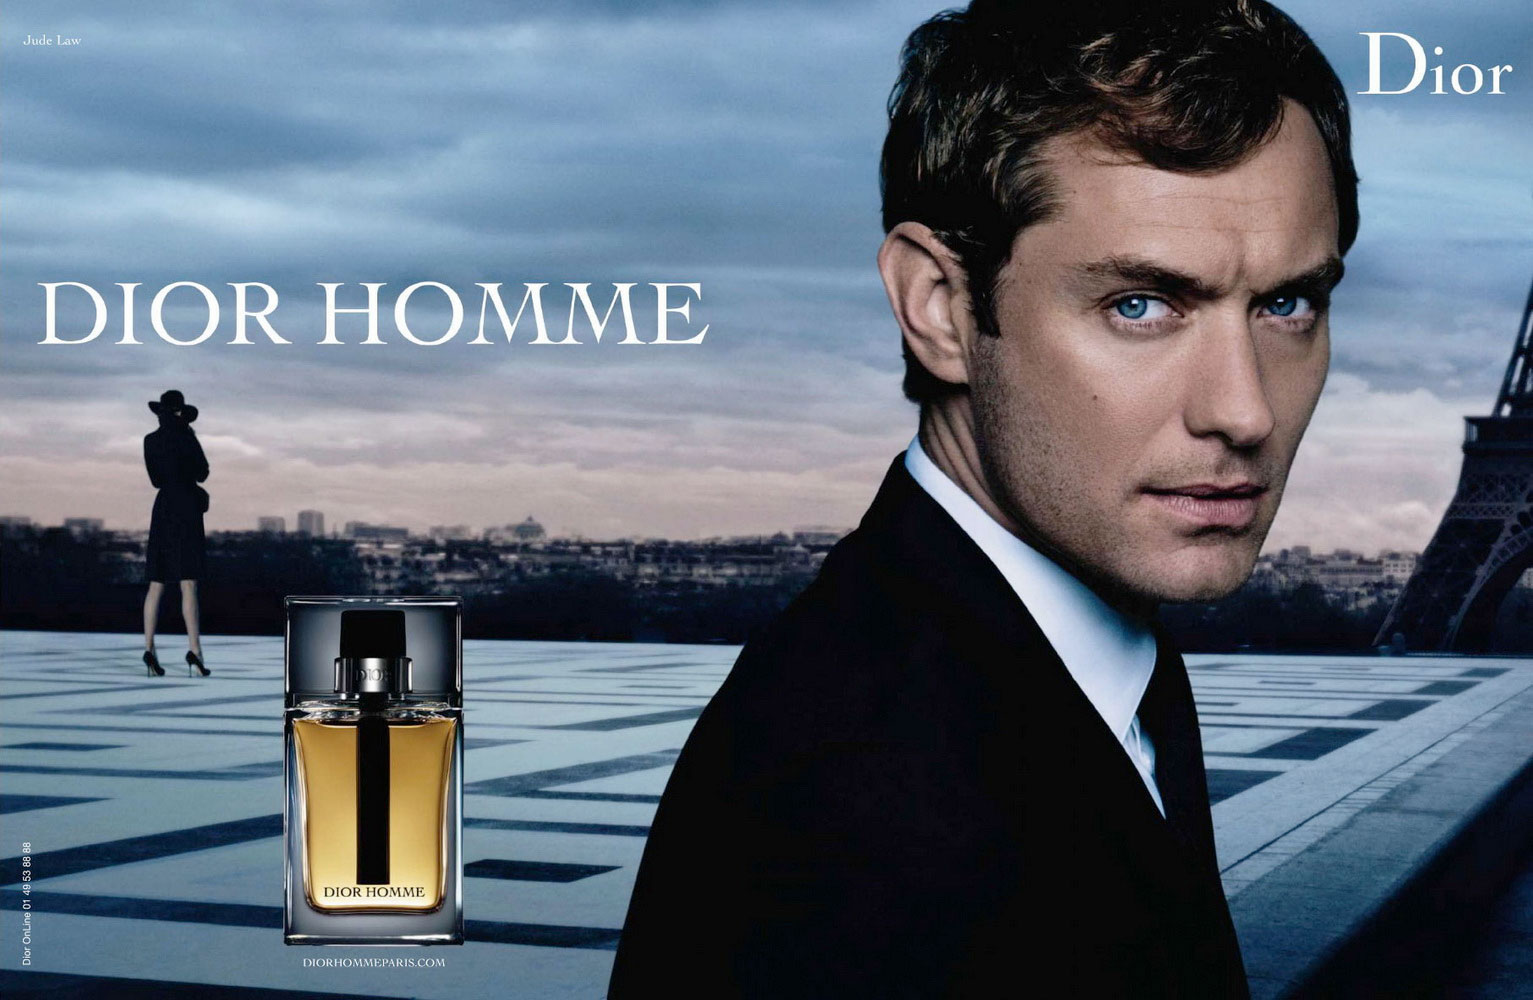 Dior Homme Jude Law